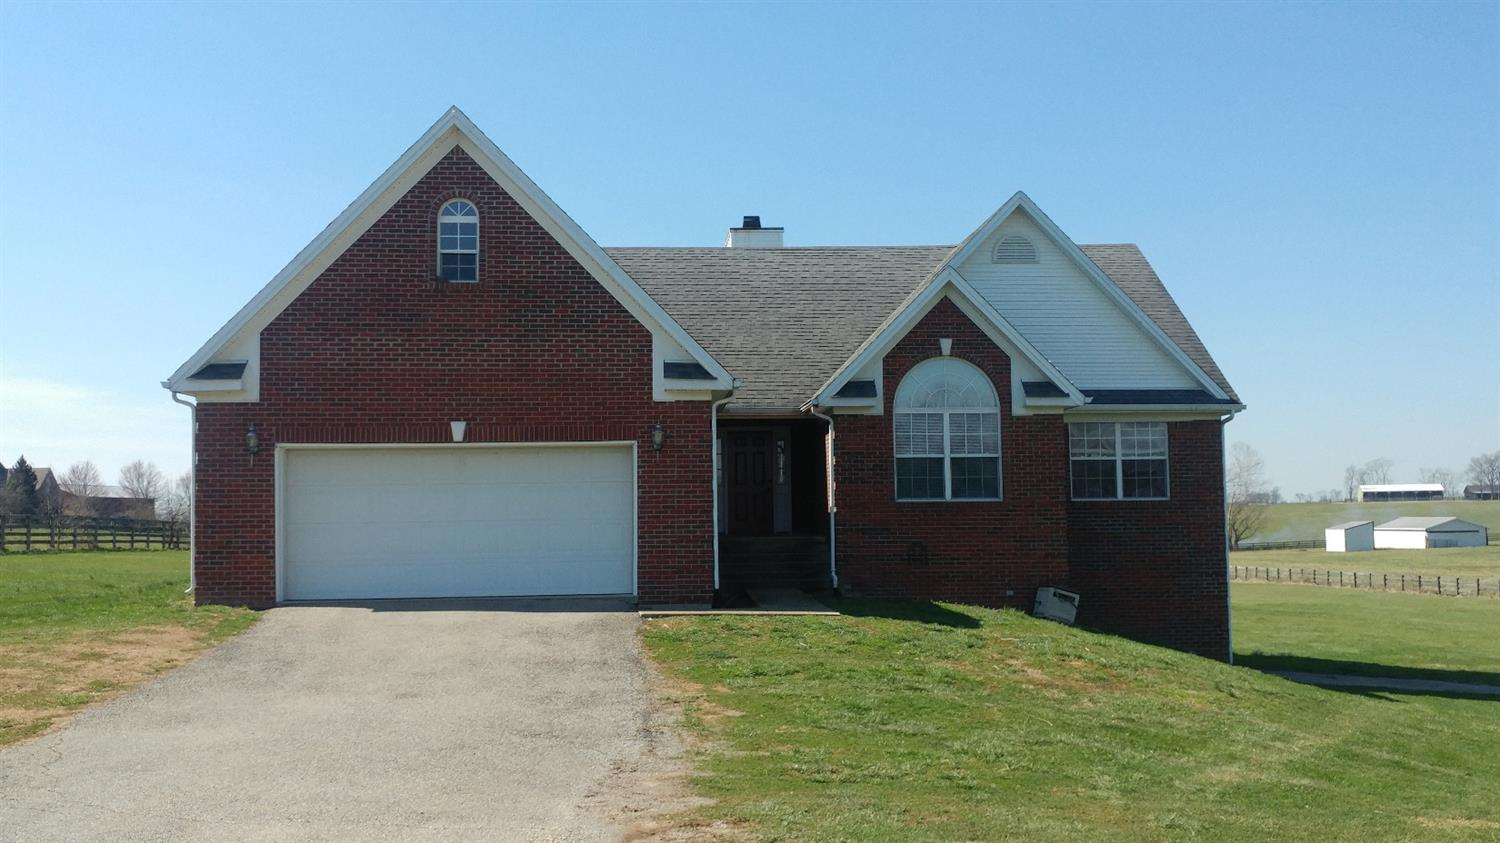 Home For Sale at 278 Luke Rd, Sadieville, KY 40370